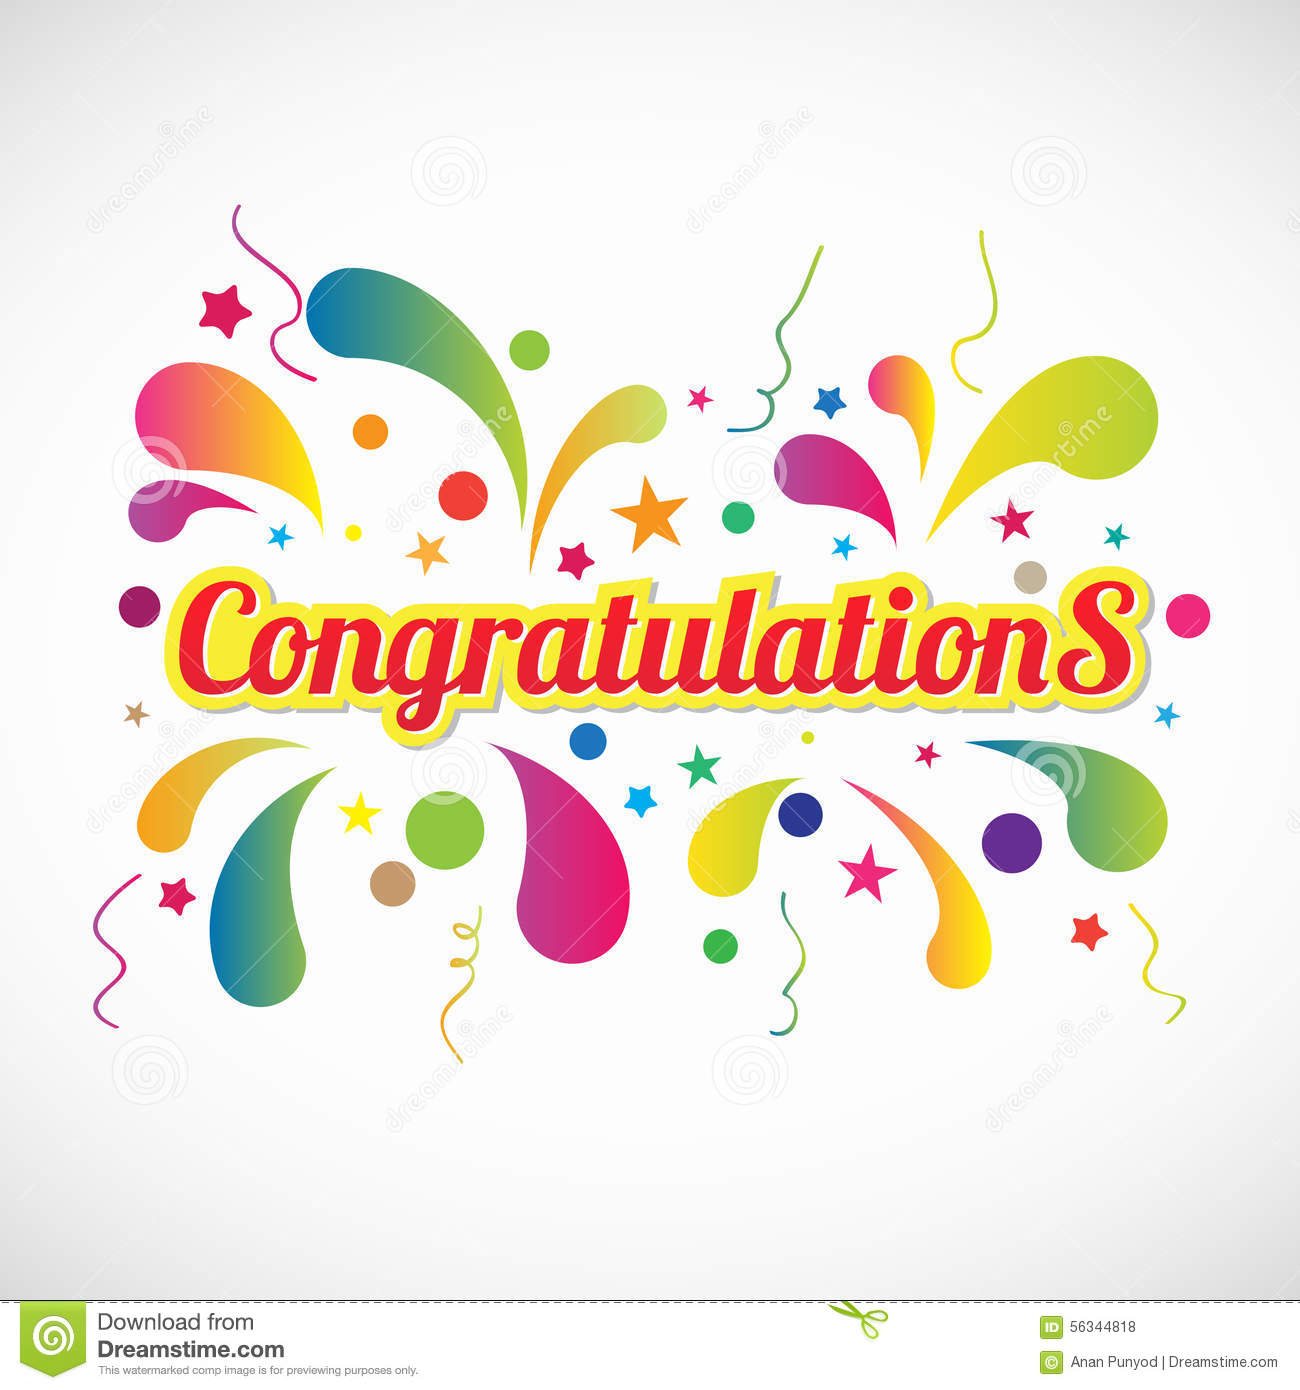 Congratulations Clipart ... Red Yellow C-Congratulations Clipart ... Red yellow Congratulations .-13